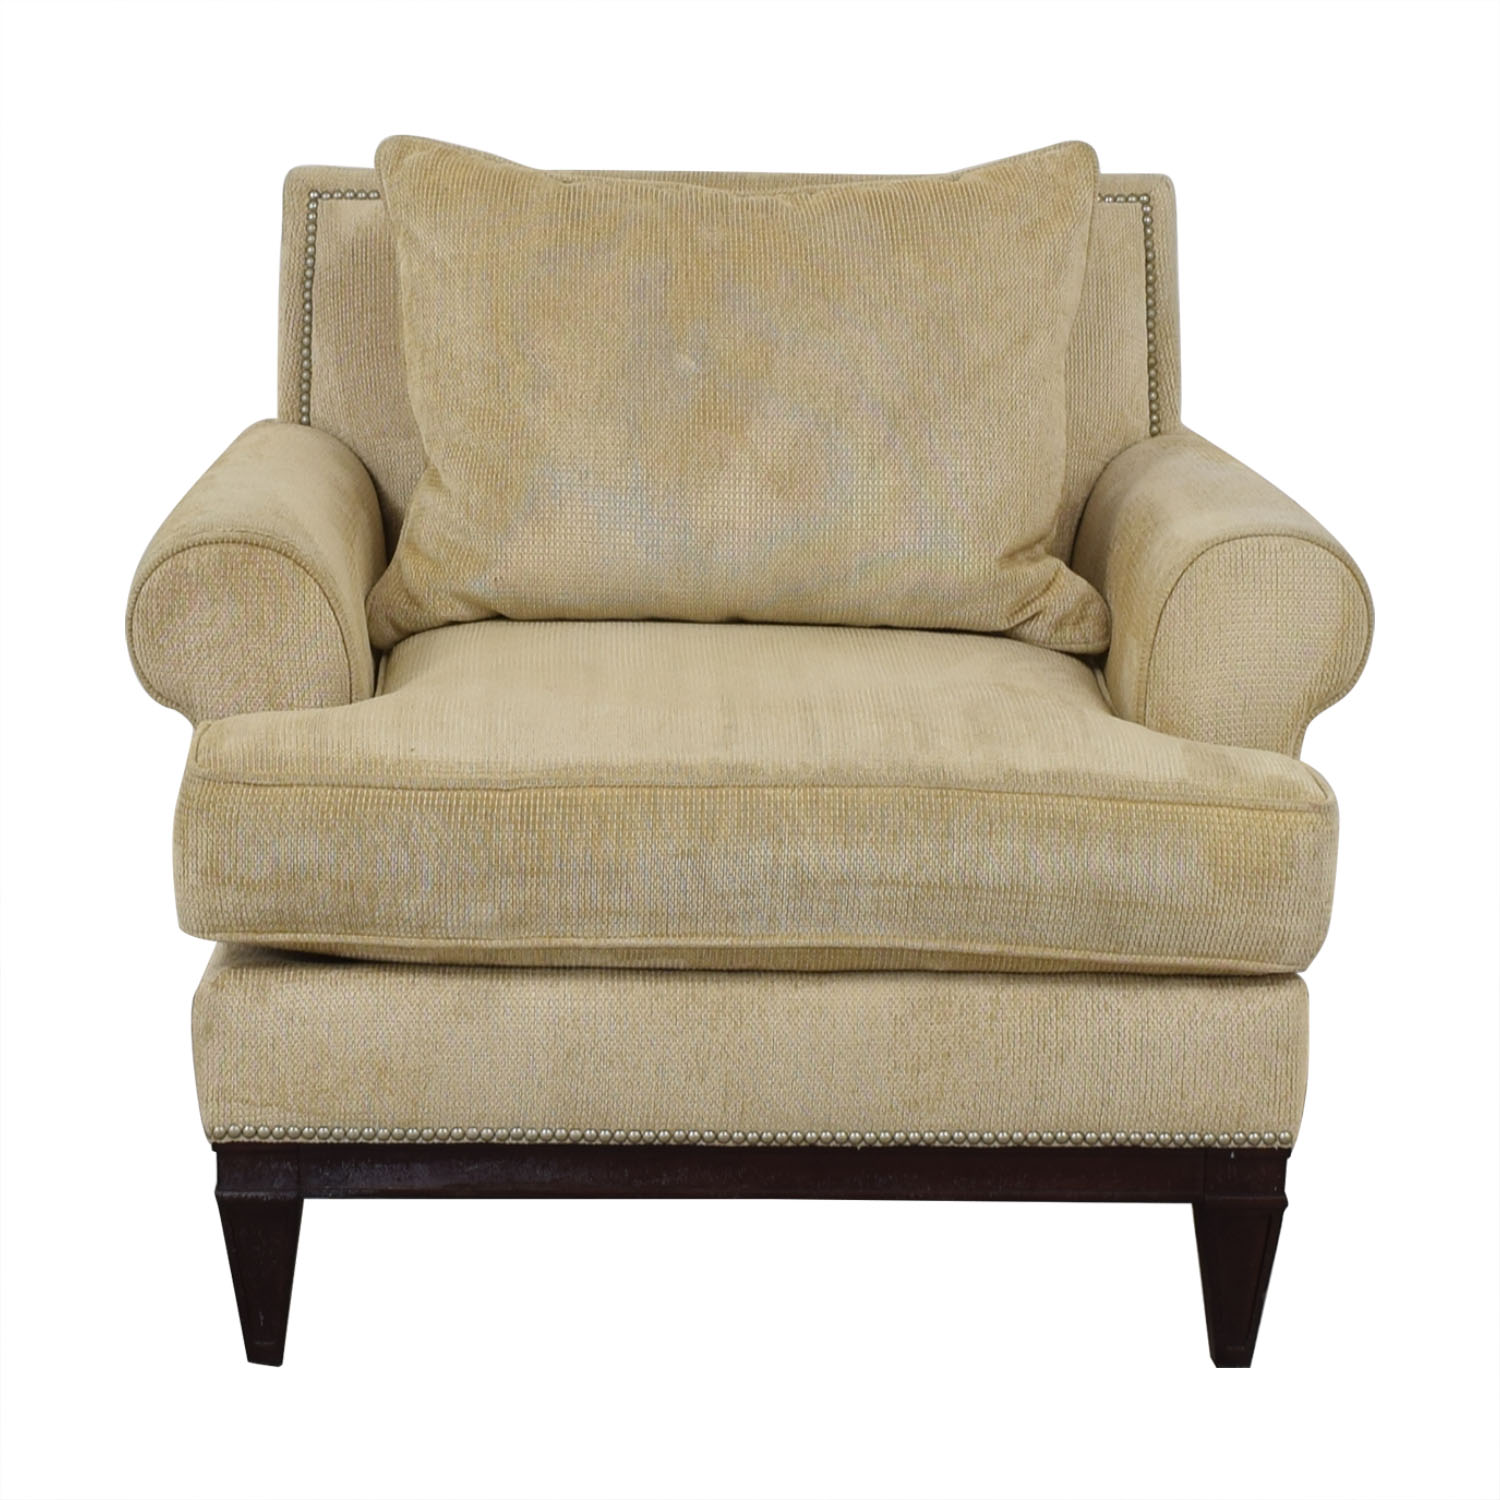 Bernhardt Roll Arm Accent Chair / Accent Chairs